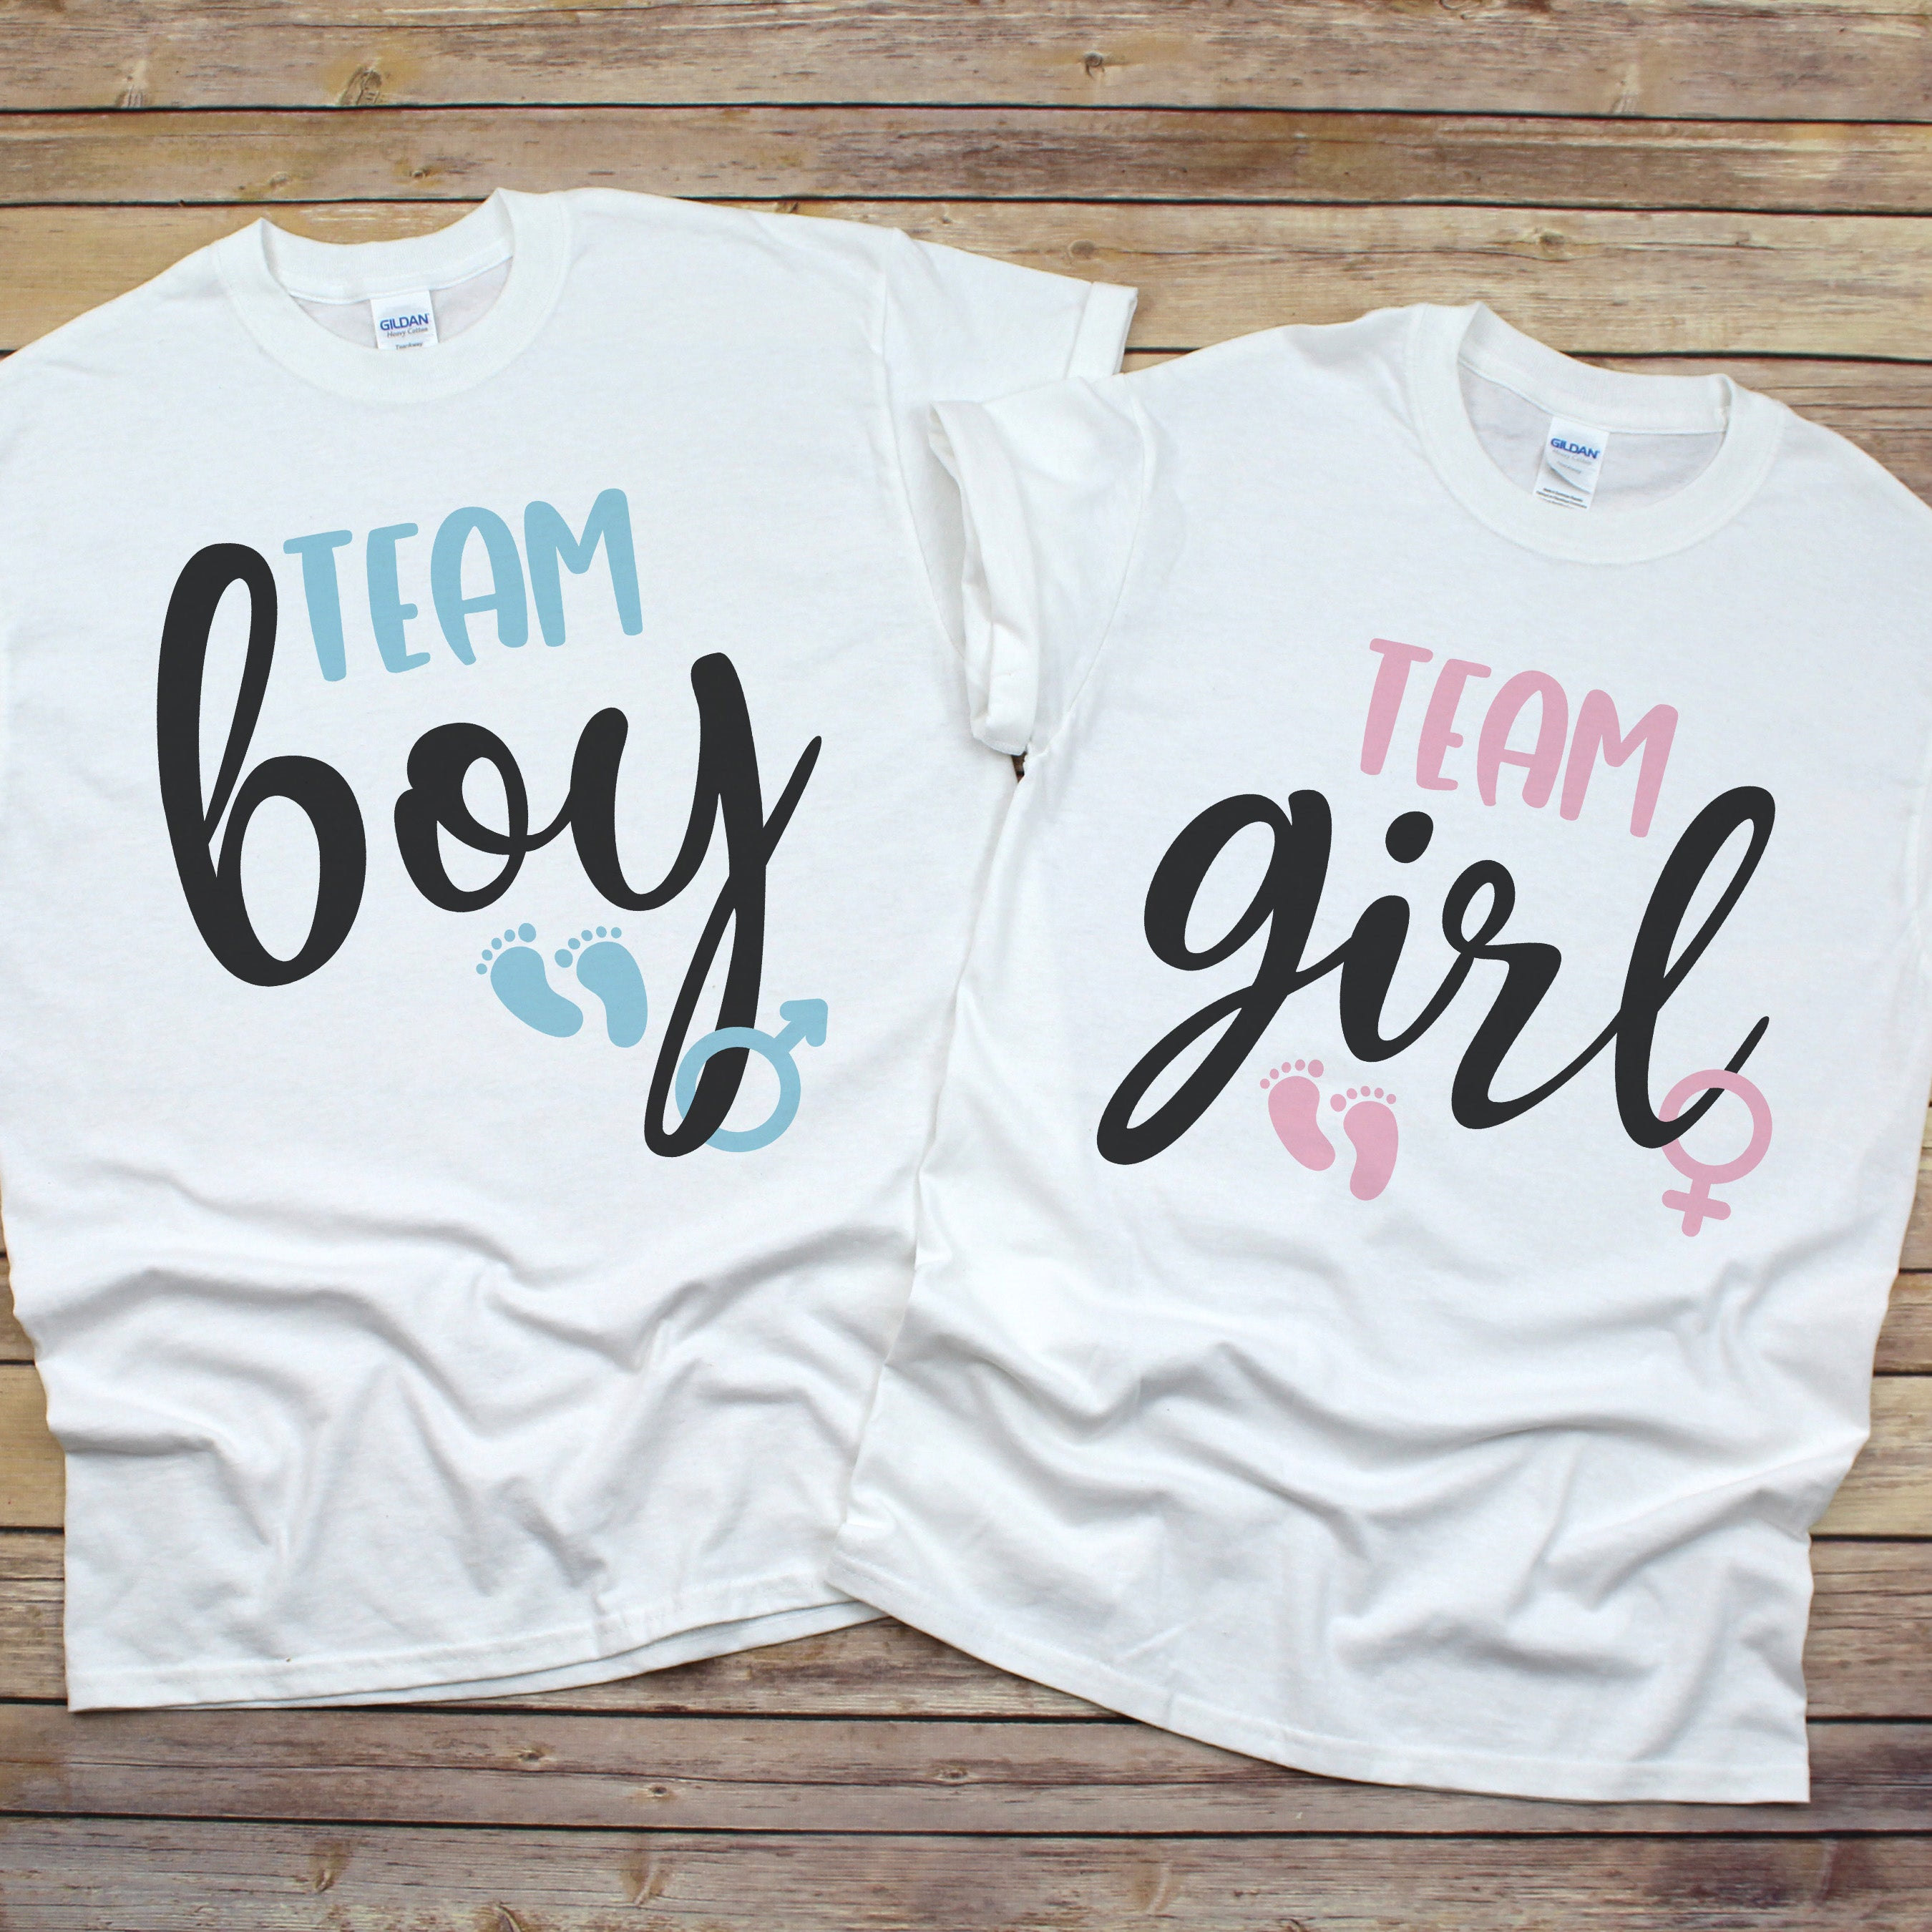 Team Boy or Team Girl Shirt - Gender Reveal Shirt - Pink or Blue Shirt - Gender Reveal Party Shirt Unisex SS